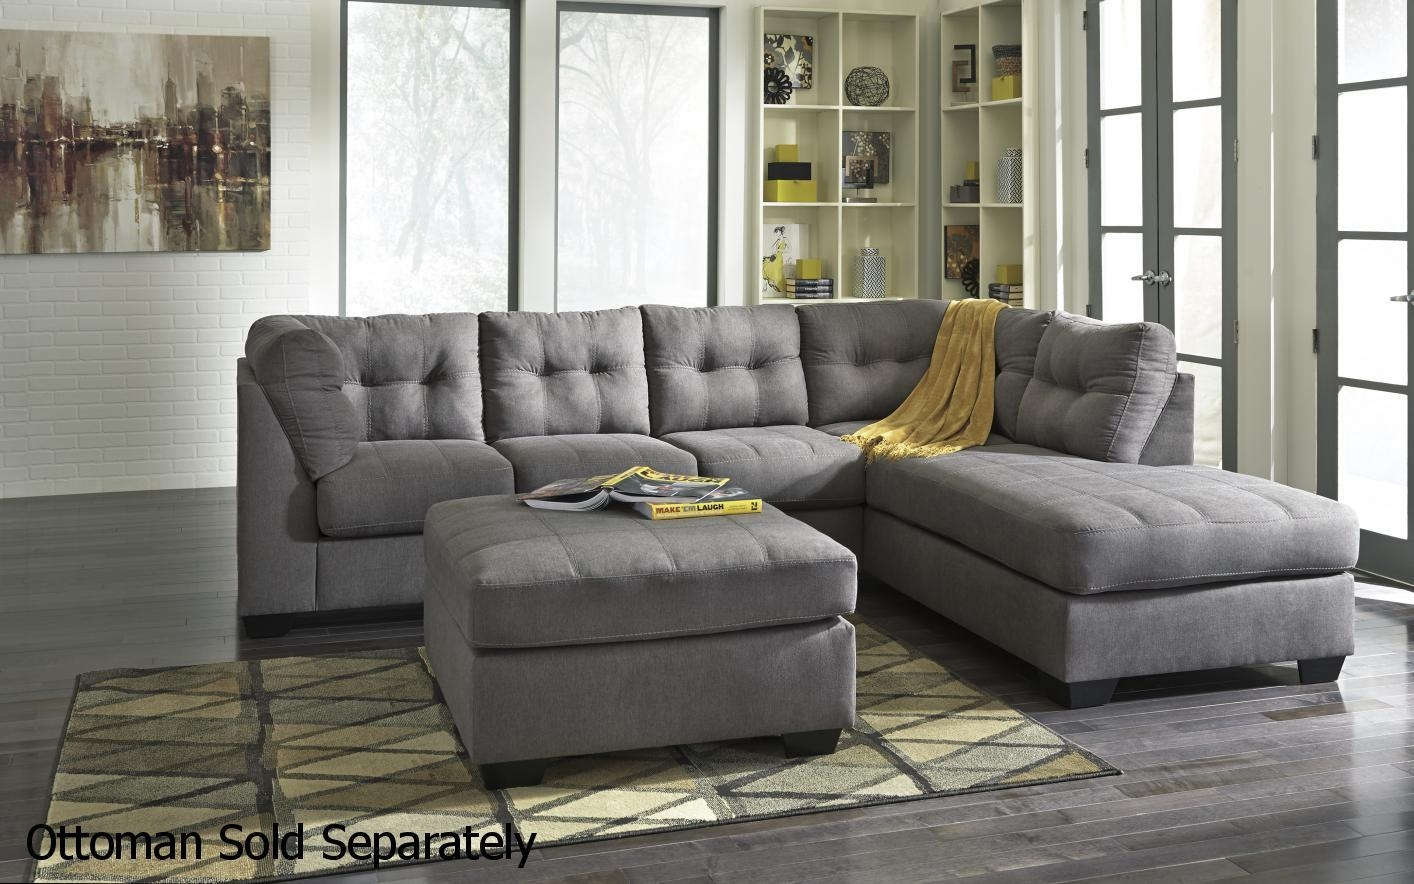 Sofas Center Charcoal Gray Sectional Sofa Beautiful Pictures – Ftfpgh For Charcoal Gray Sectional Sofas (Image 18 of 20)